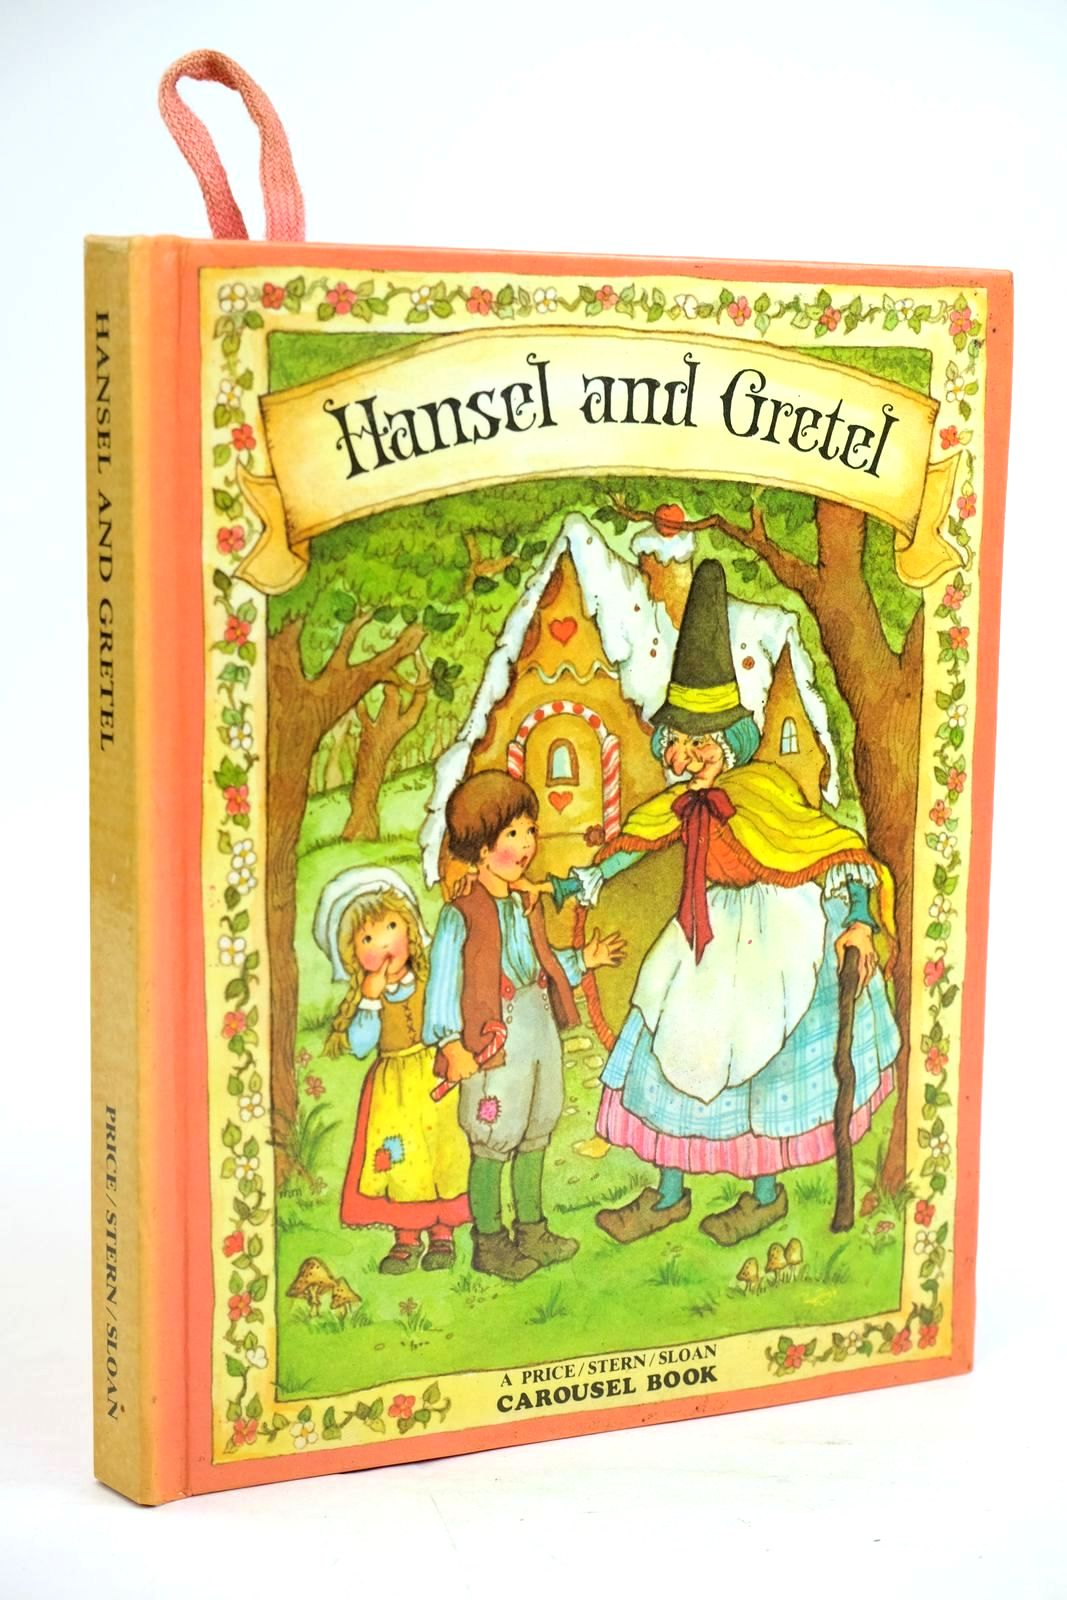 Photo of HANSEL AND GRETEL illustrated by McClain, Mary published by Price, Stern, Sloan (STOCK CODE: 1319594)  for sale by Stella & Rose's Books